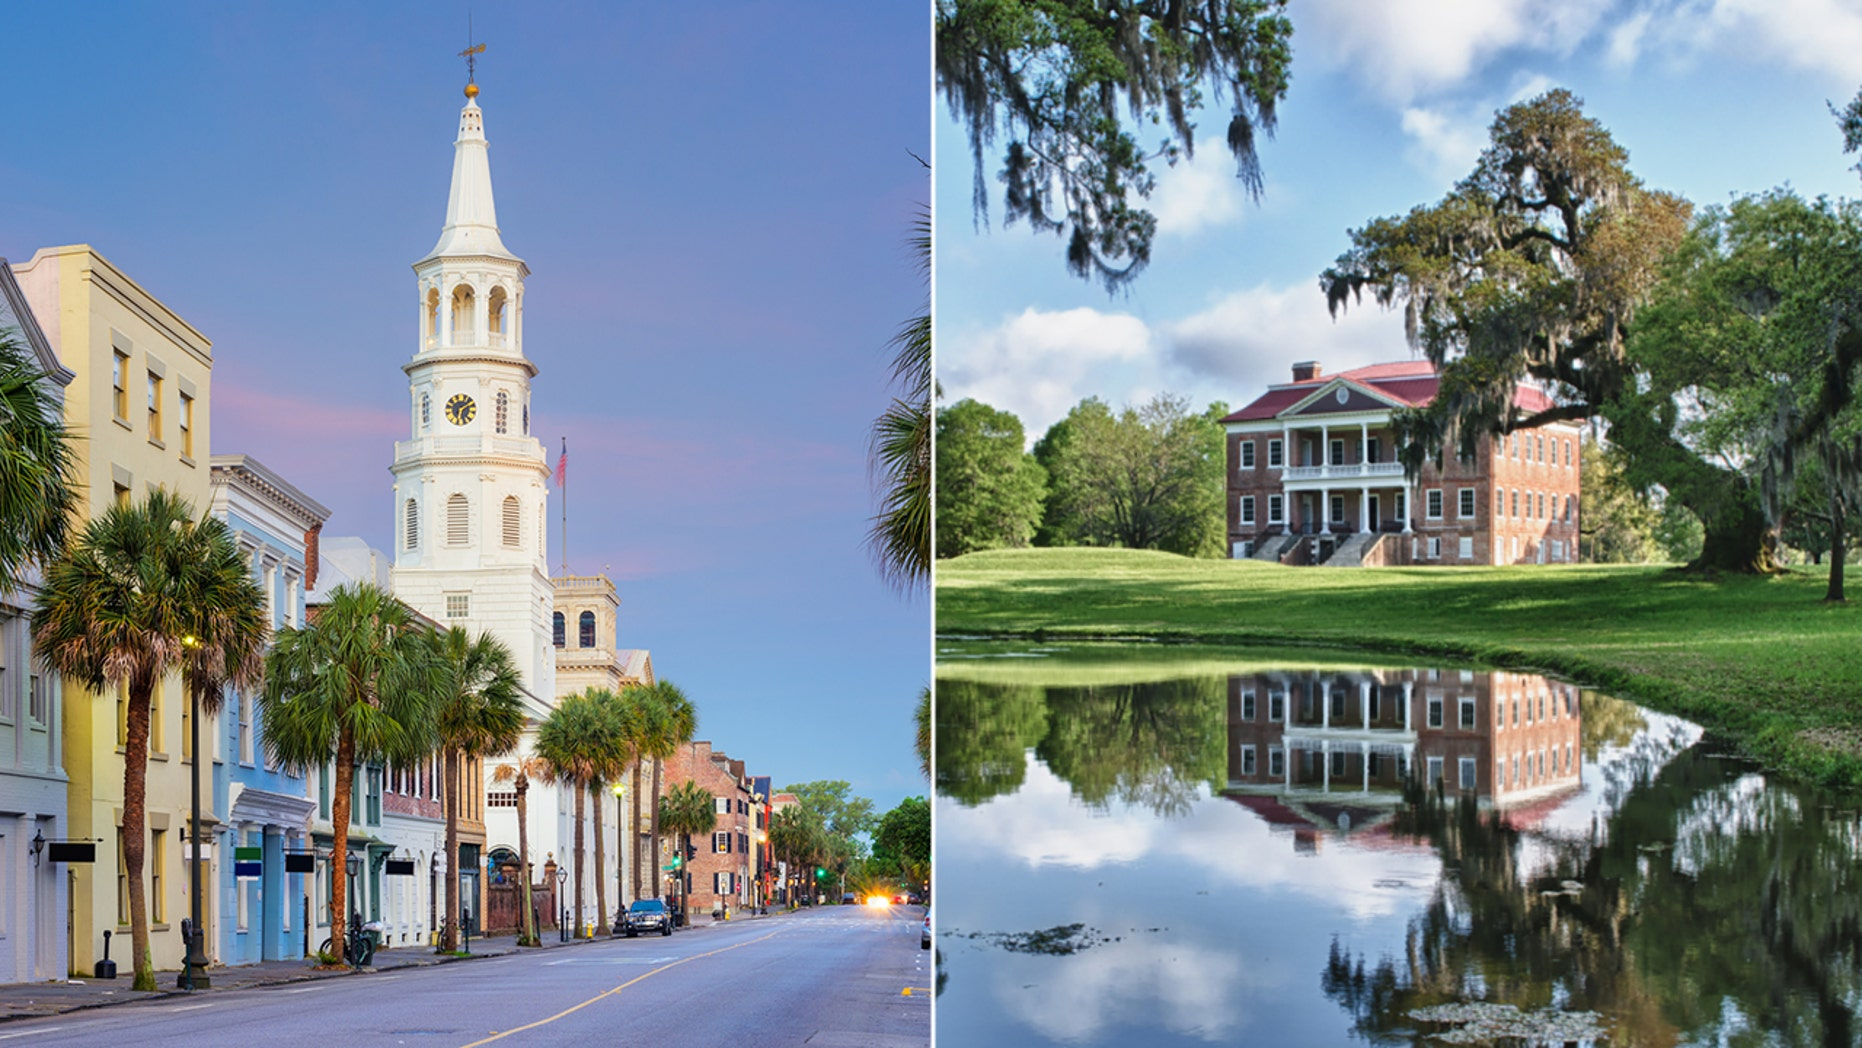 Charleston saw a surge of visitors in 2017 thanks to the eclipse, but the city offers much more than stargazing.